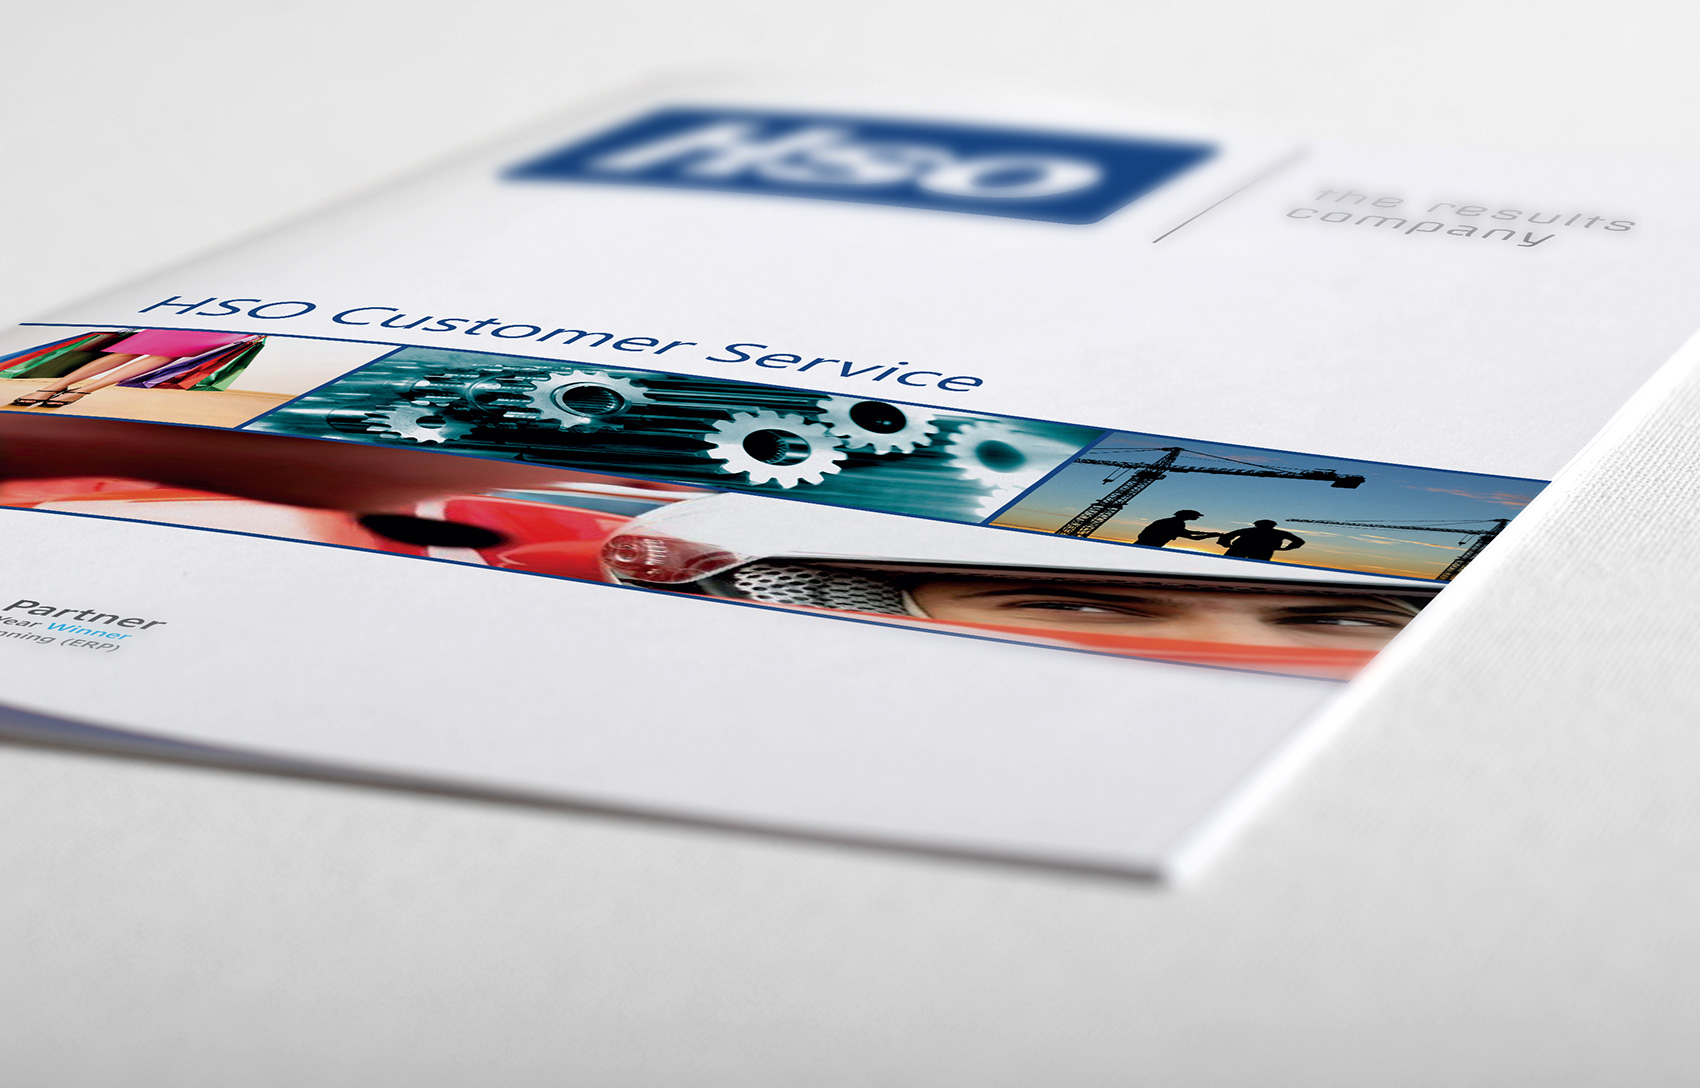 Porfolio-hso-booklet-flat-front-page-close-up